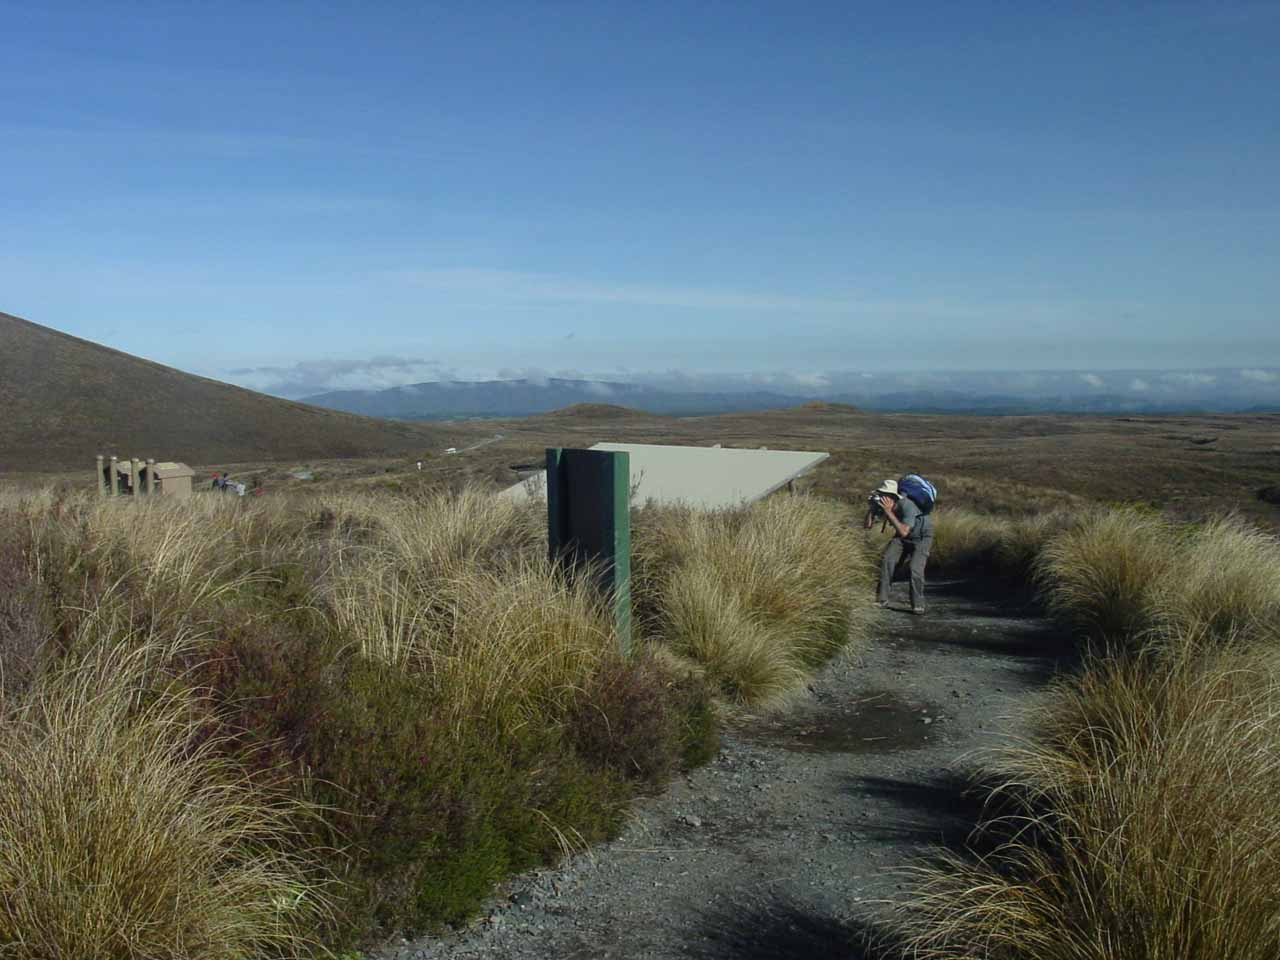 At the start of the Tongariro Crossing Track